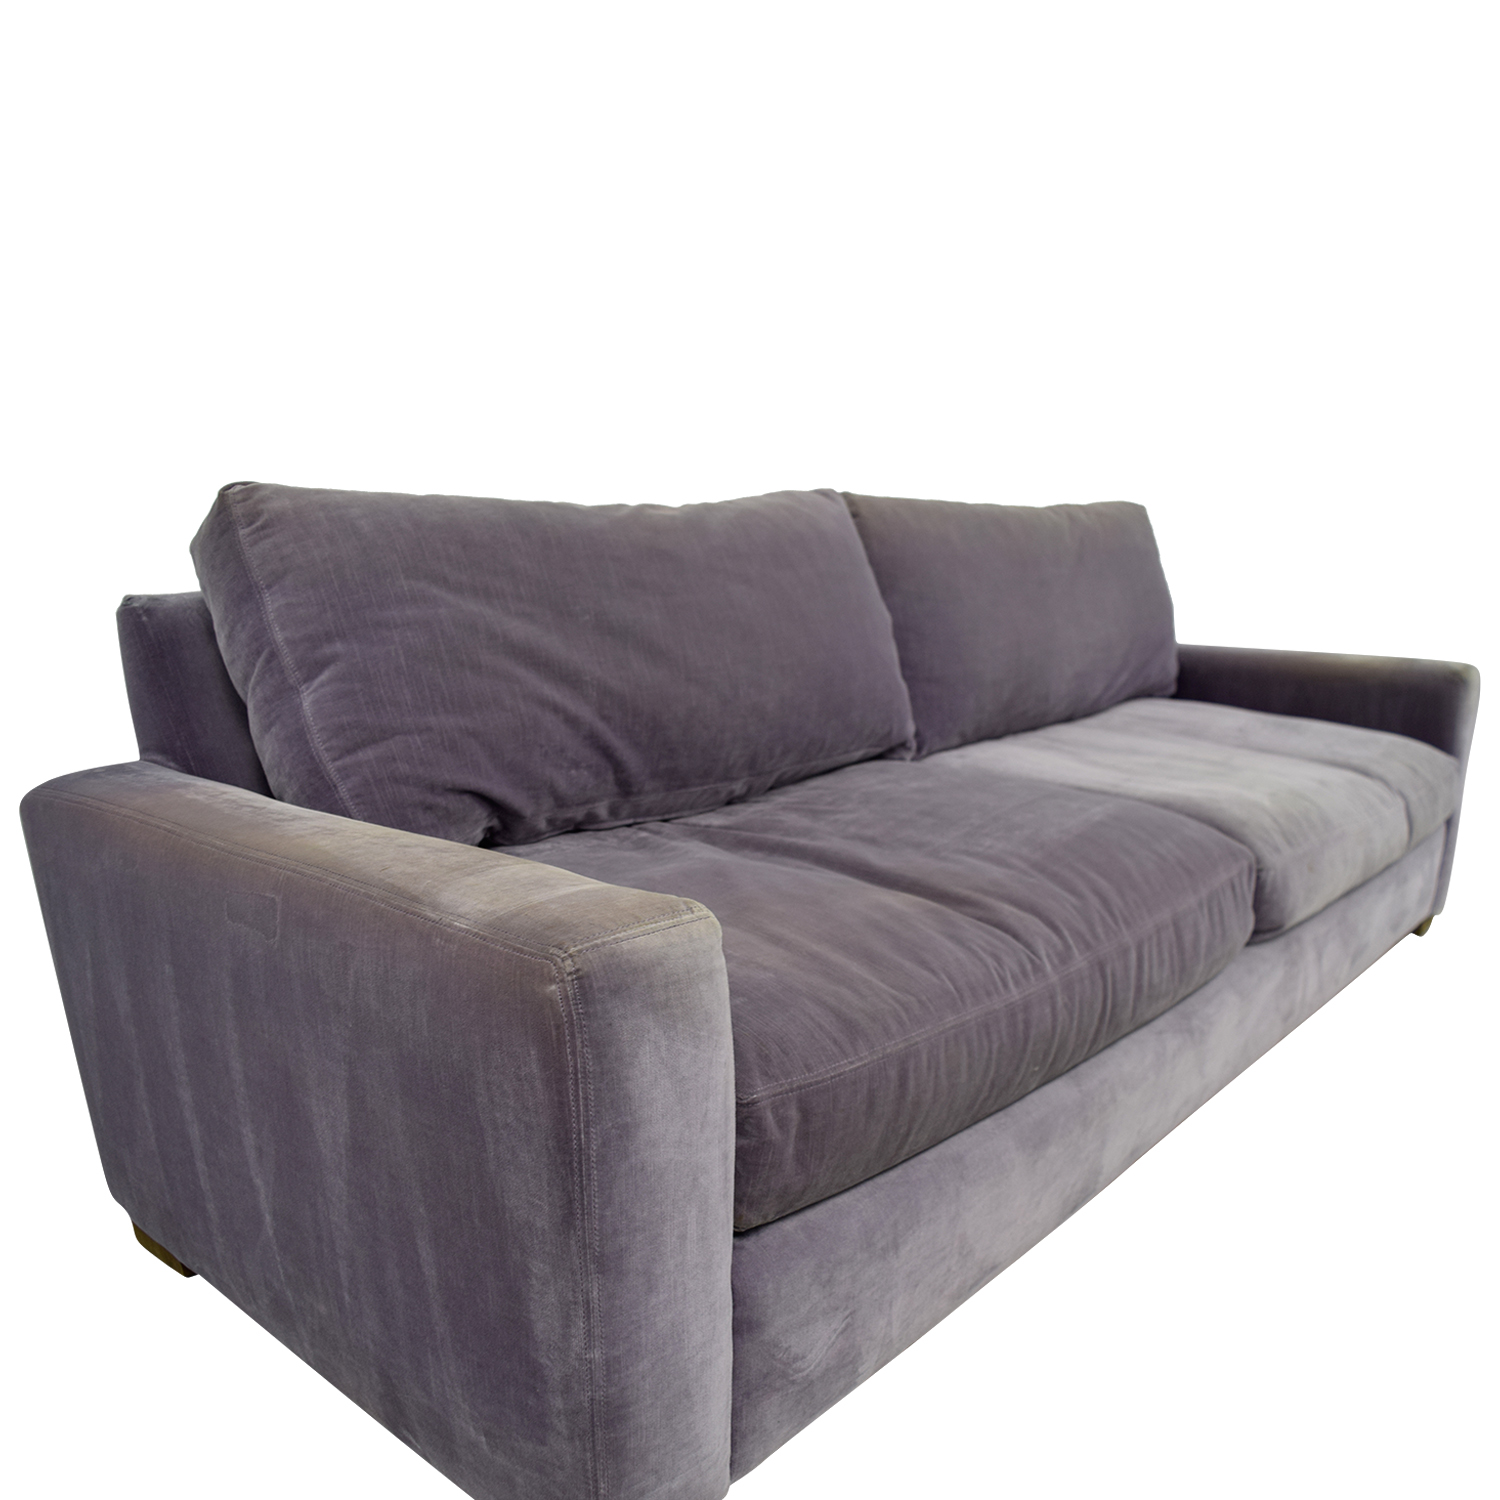 who makes the maxwell sofa for restoration hardware glider outdoor 90 off